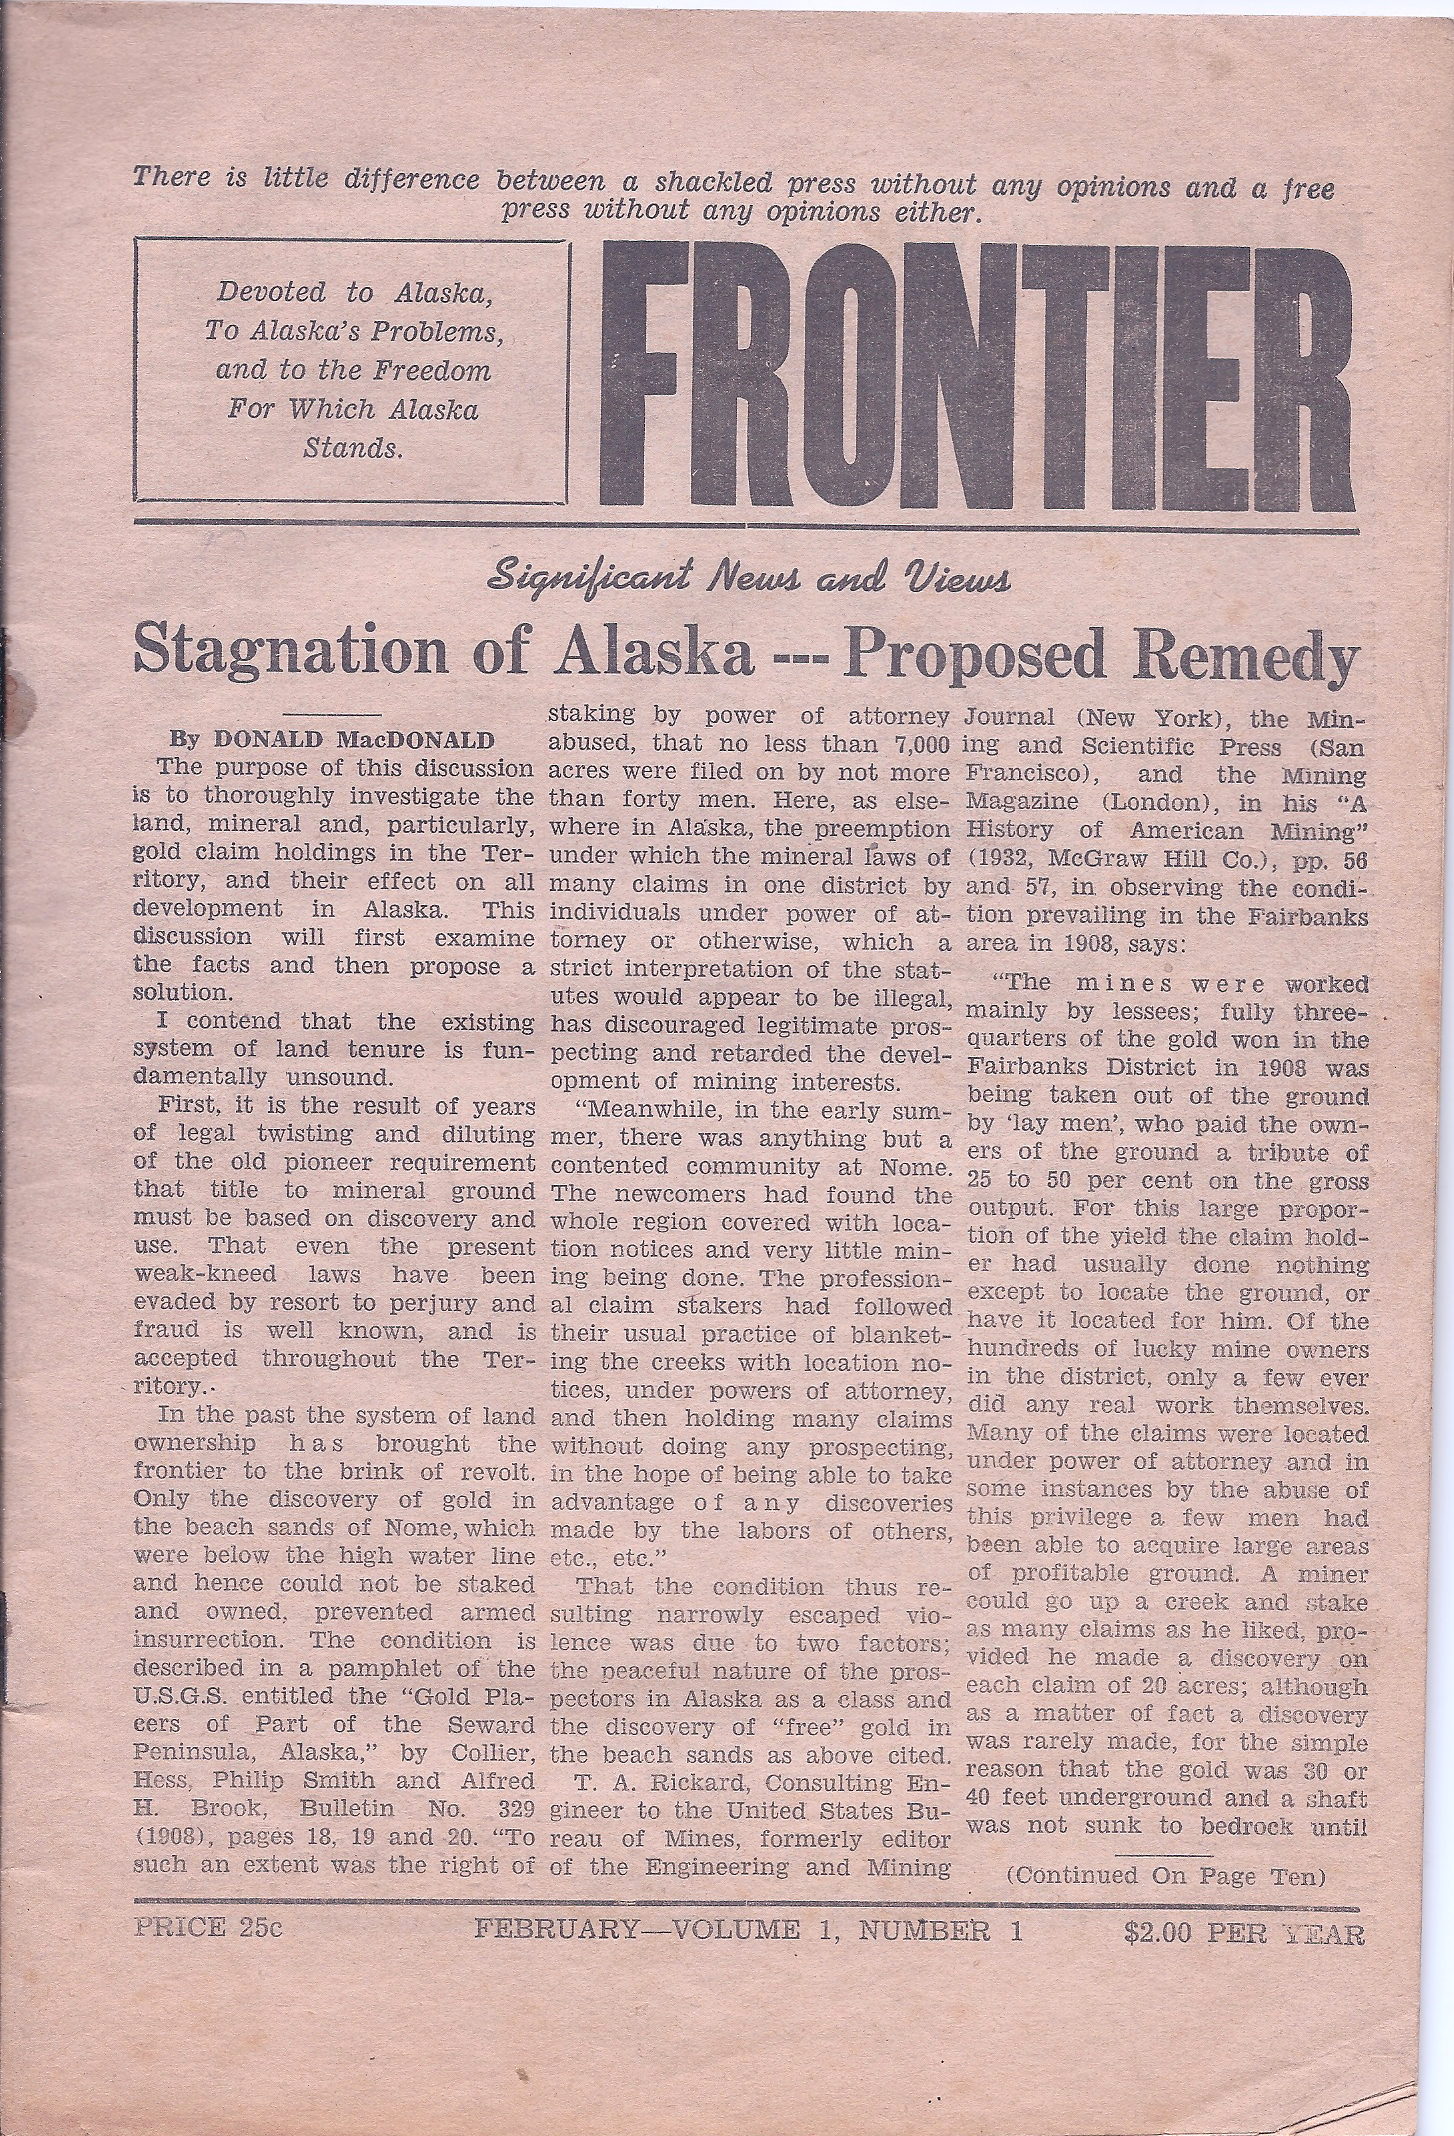 Frontier Vol 1 Number 1: Febuary 1940